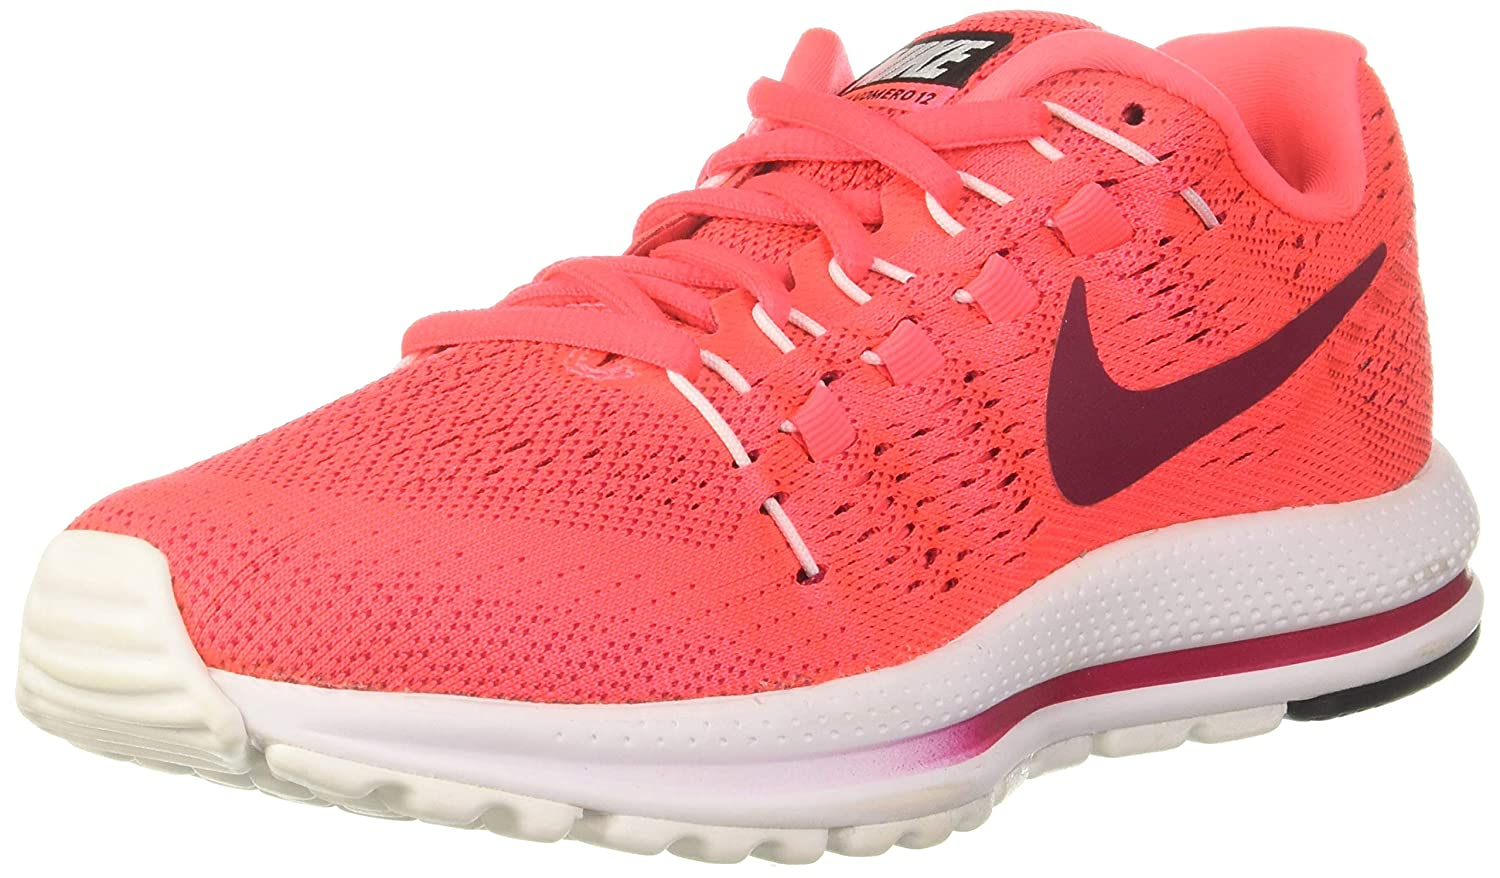 WMNS Air Zoom Vomero 12 Running Shoes